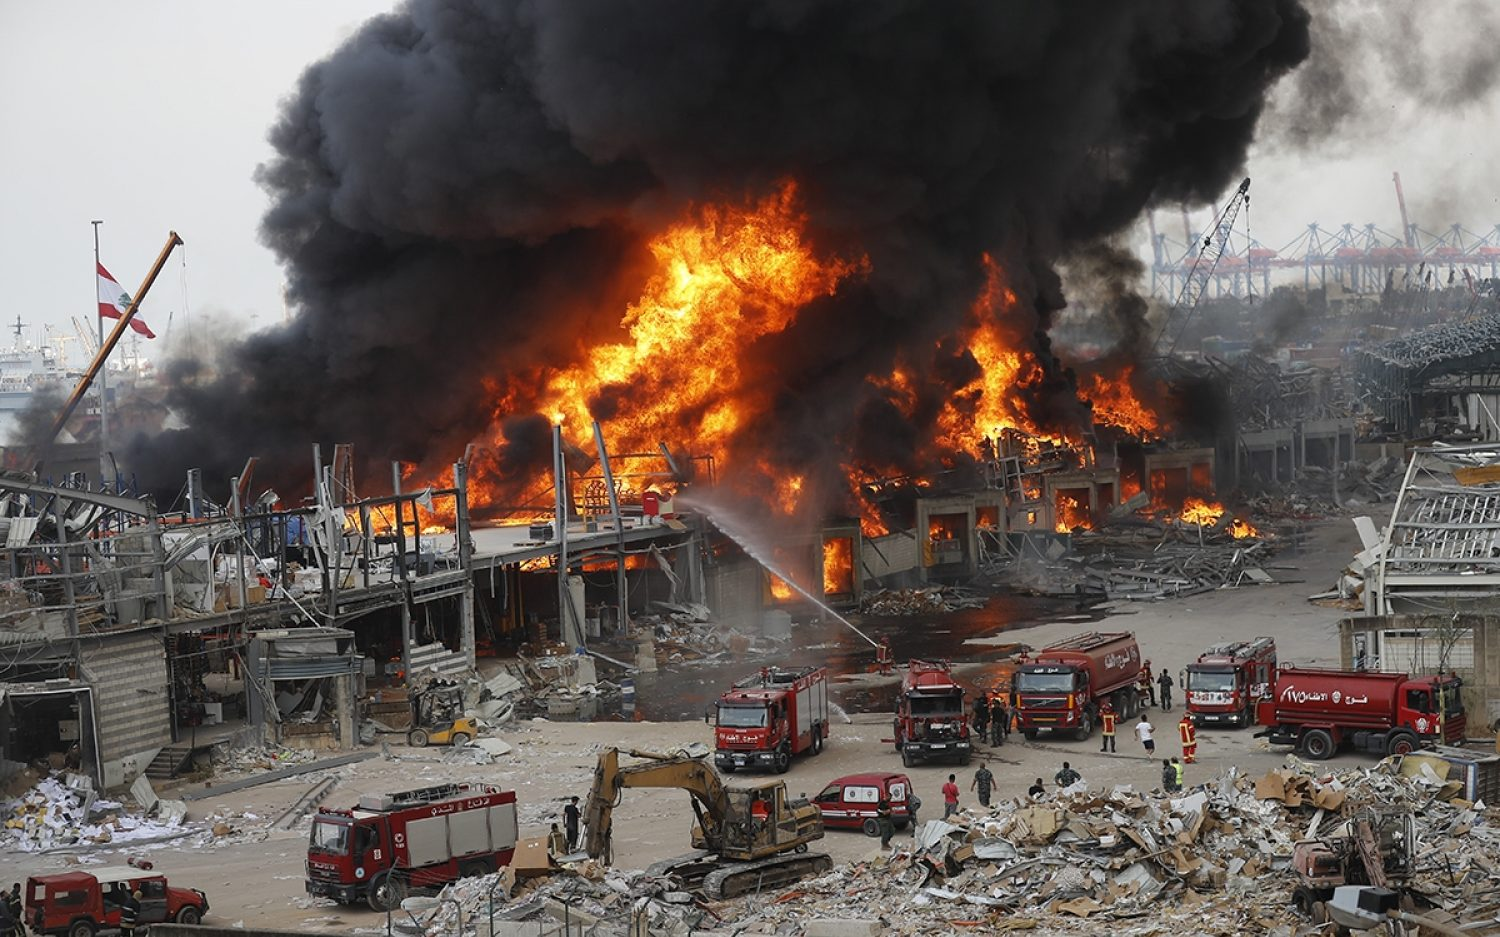 Fire breaks out at Beirut port